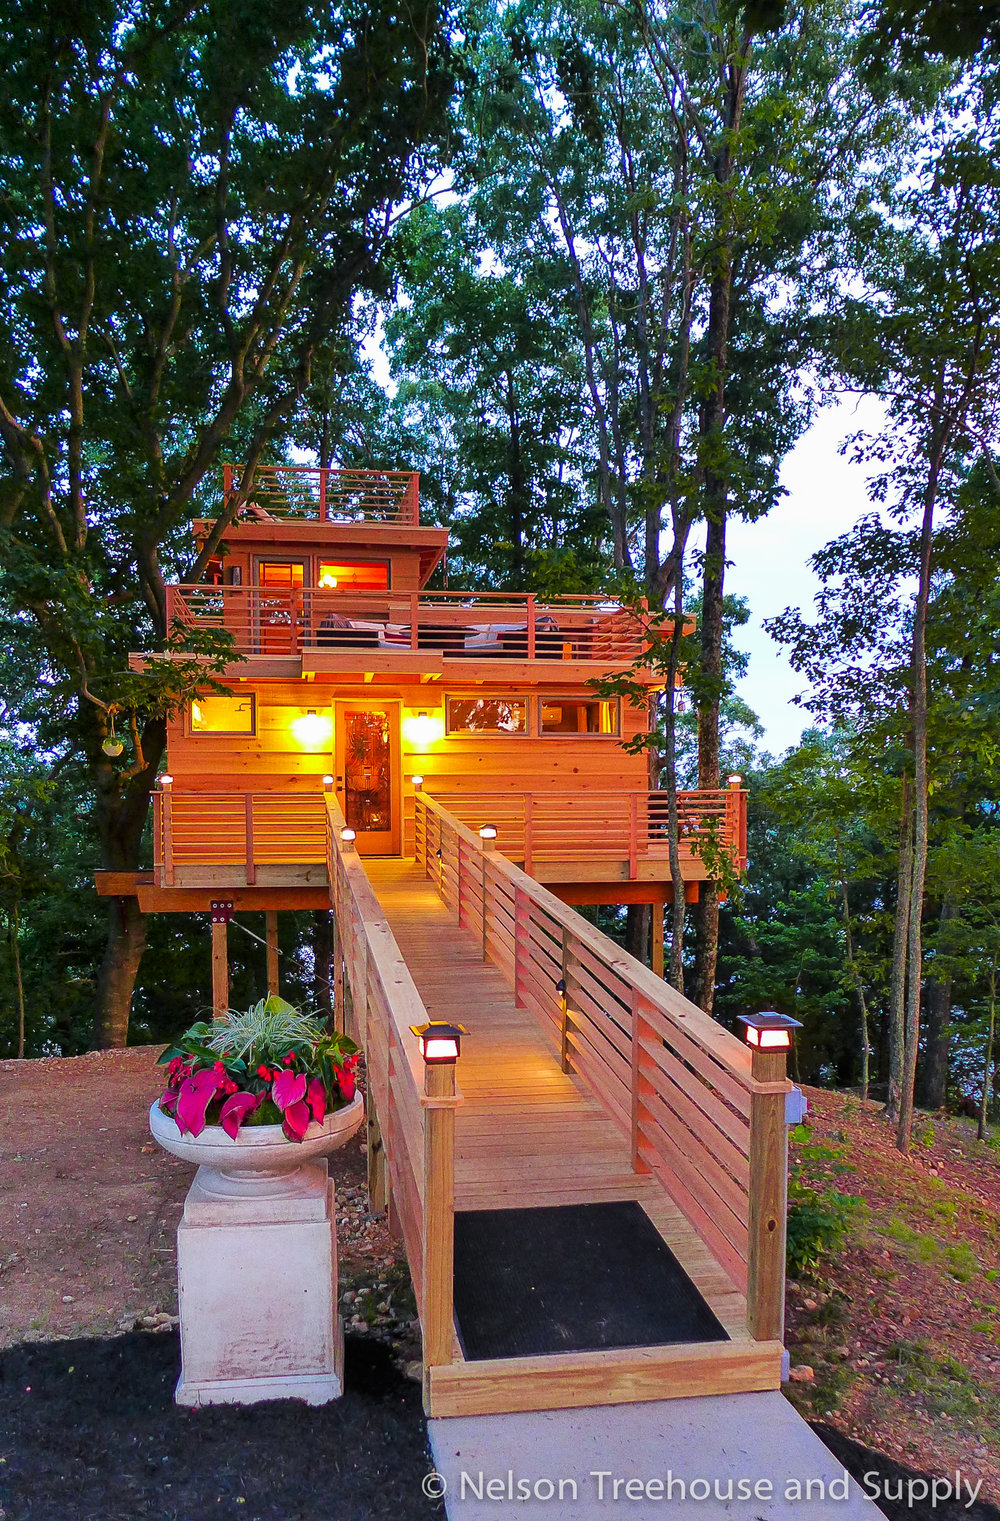 frank-lloyd-wright-treehouse-exterior-3